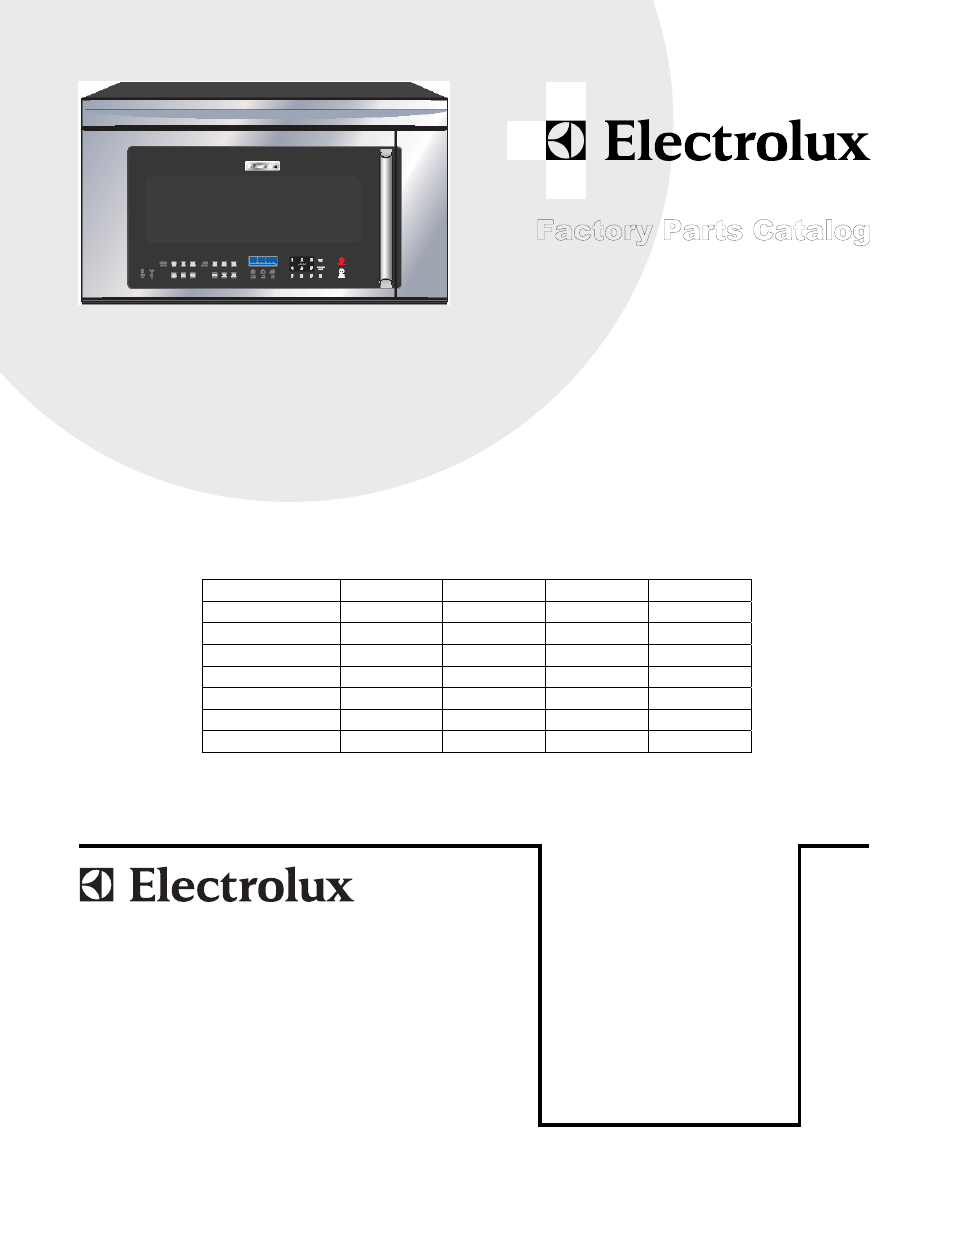 hight resolution of electrolux range wiring diagram electrolux dryer parts online not electrolux eibmch user manual pages